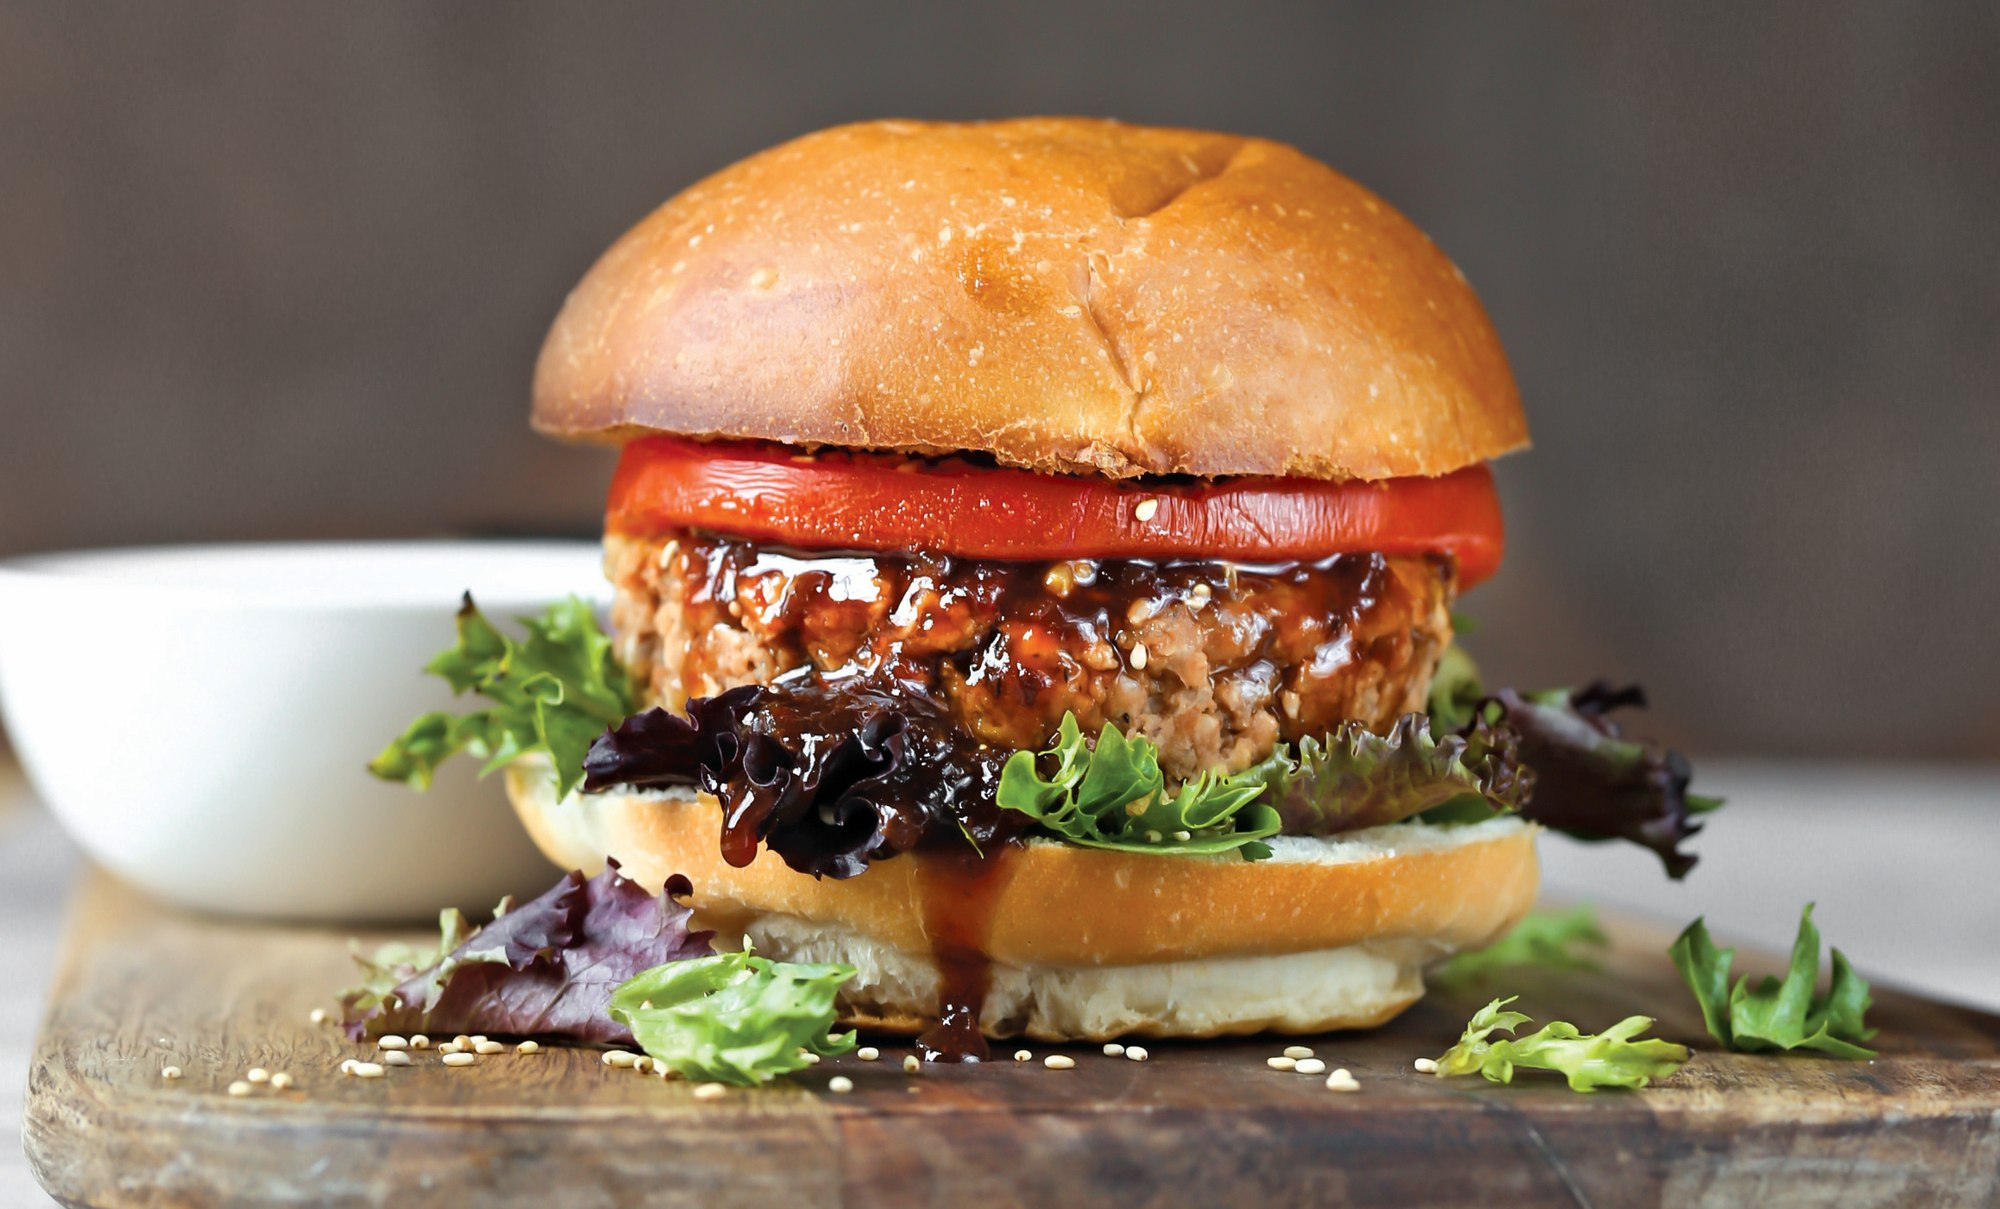 A vegan burger recipe that could change your mind about Meatless Monday